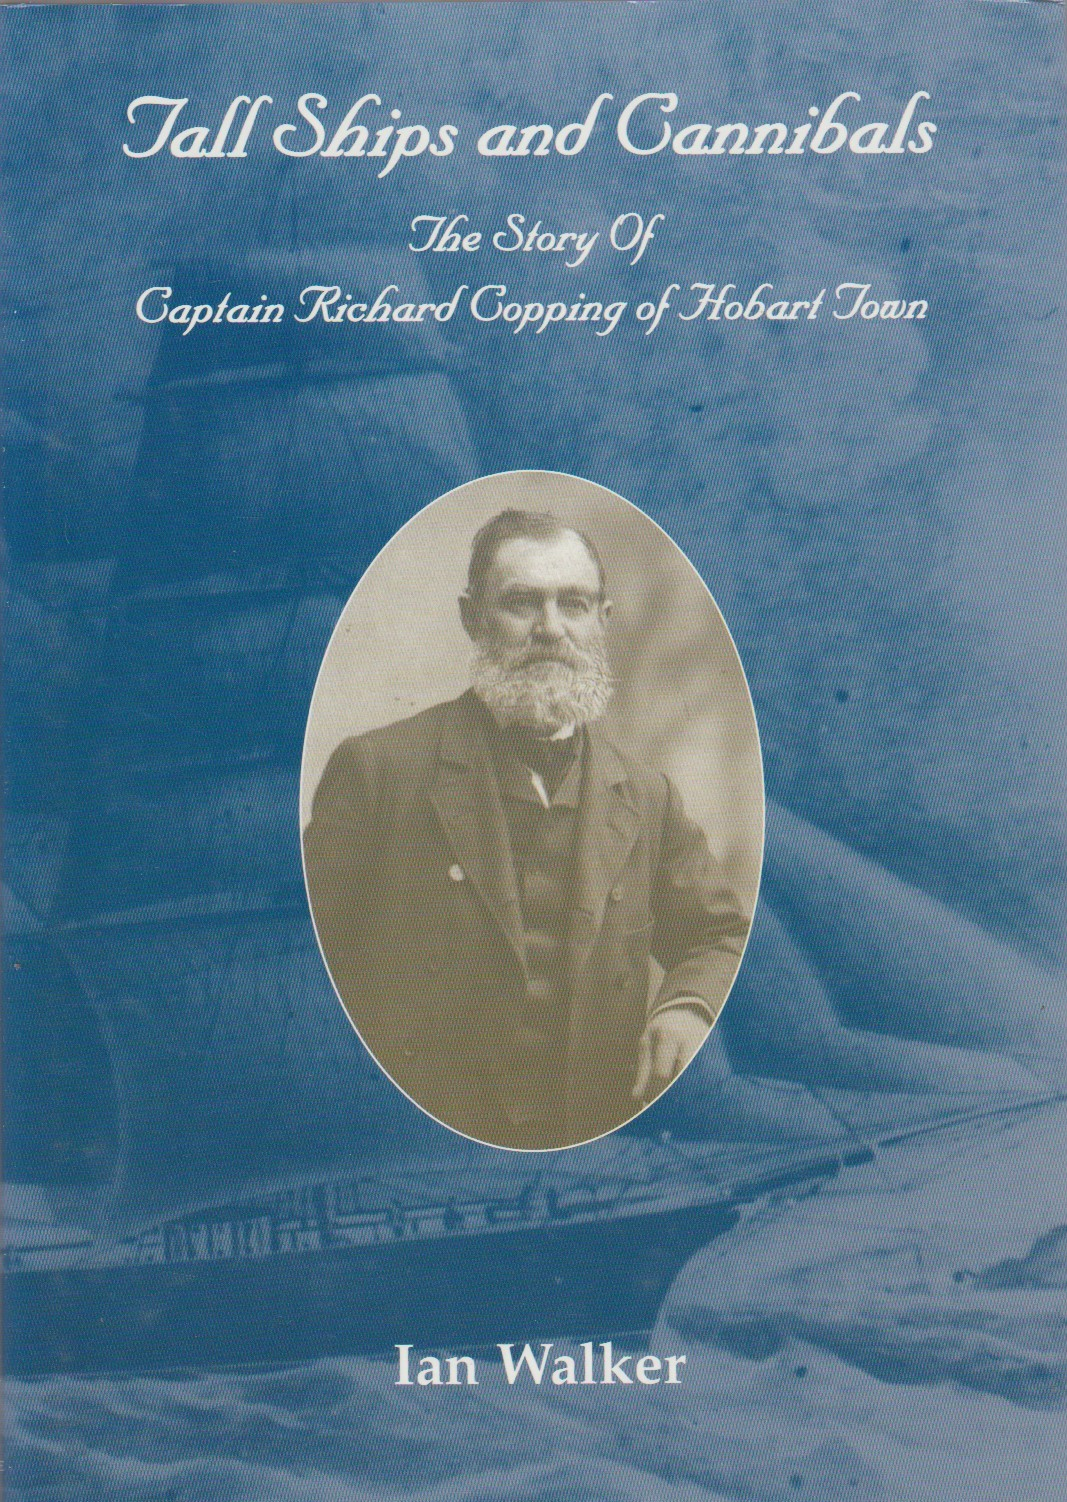 Tall Ships and Cannibals - the story of Captain Richard Copping of Hobart Town